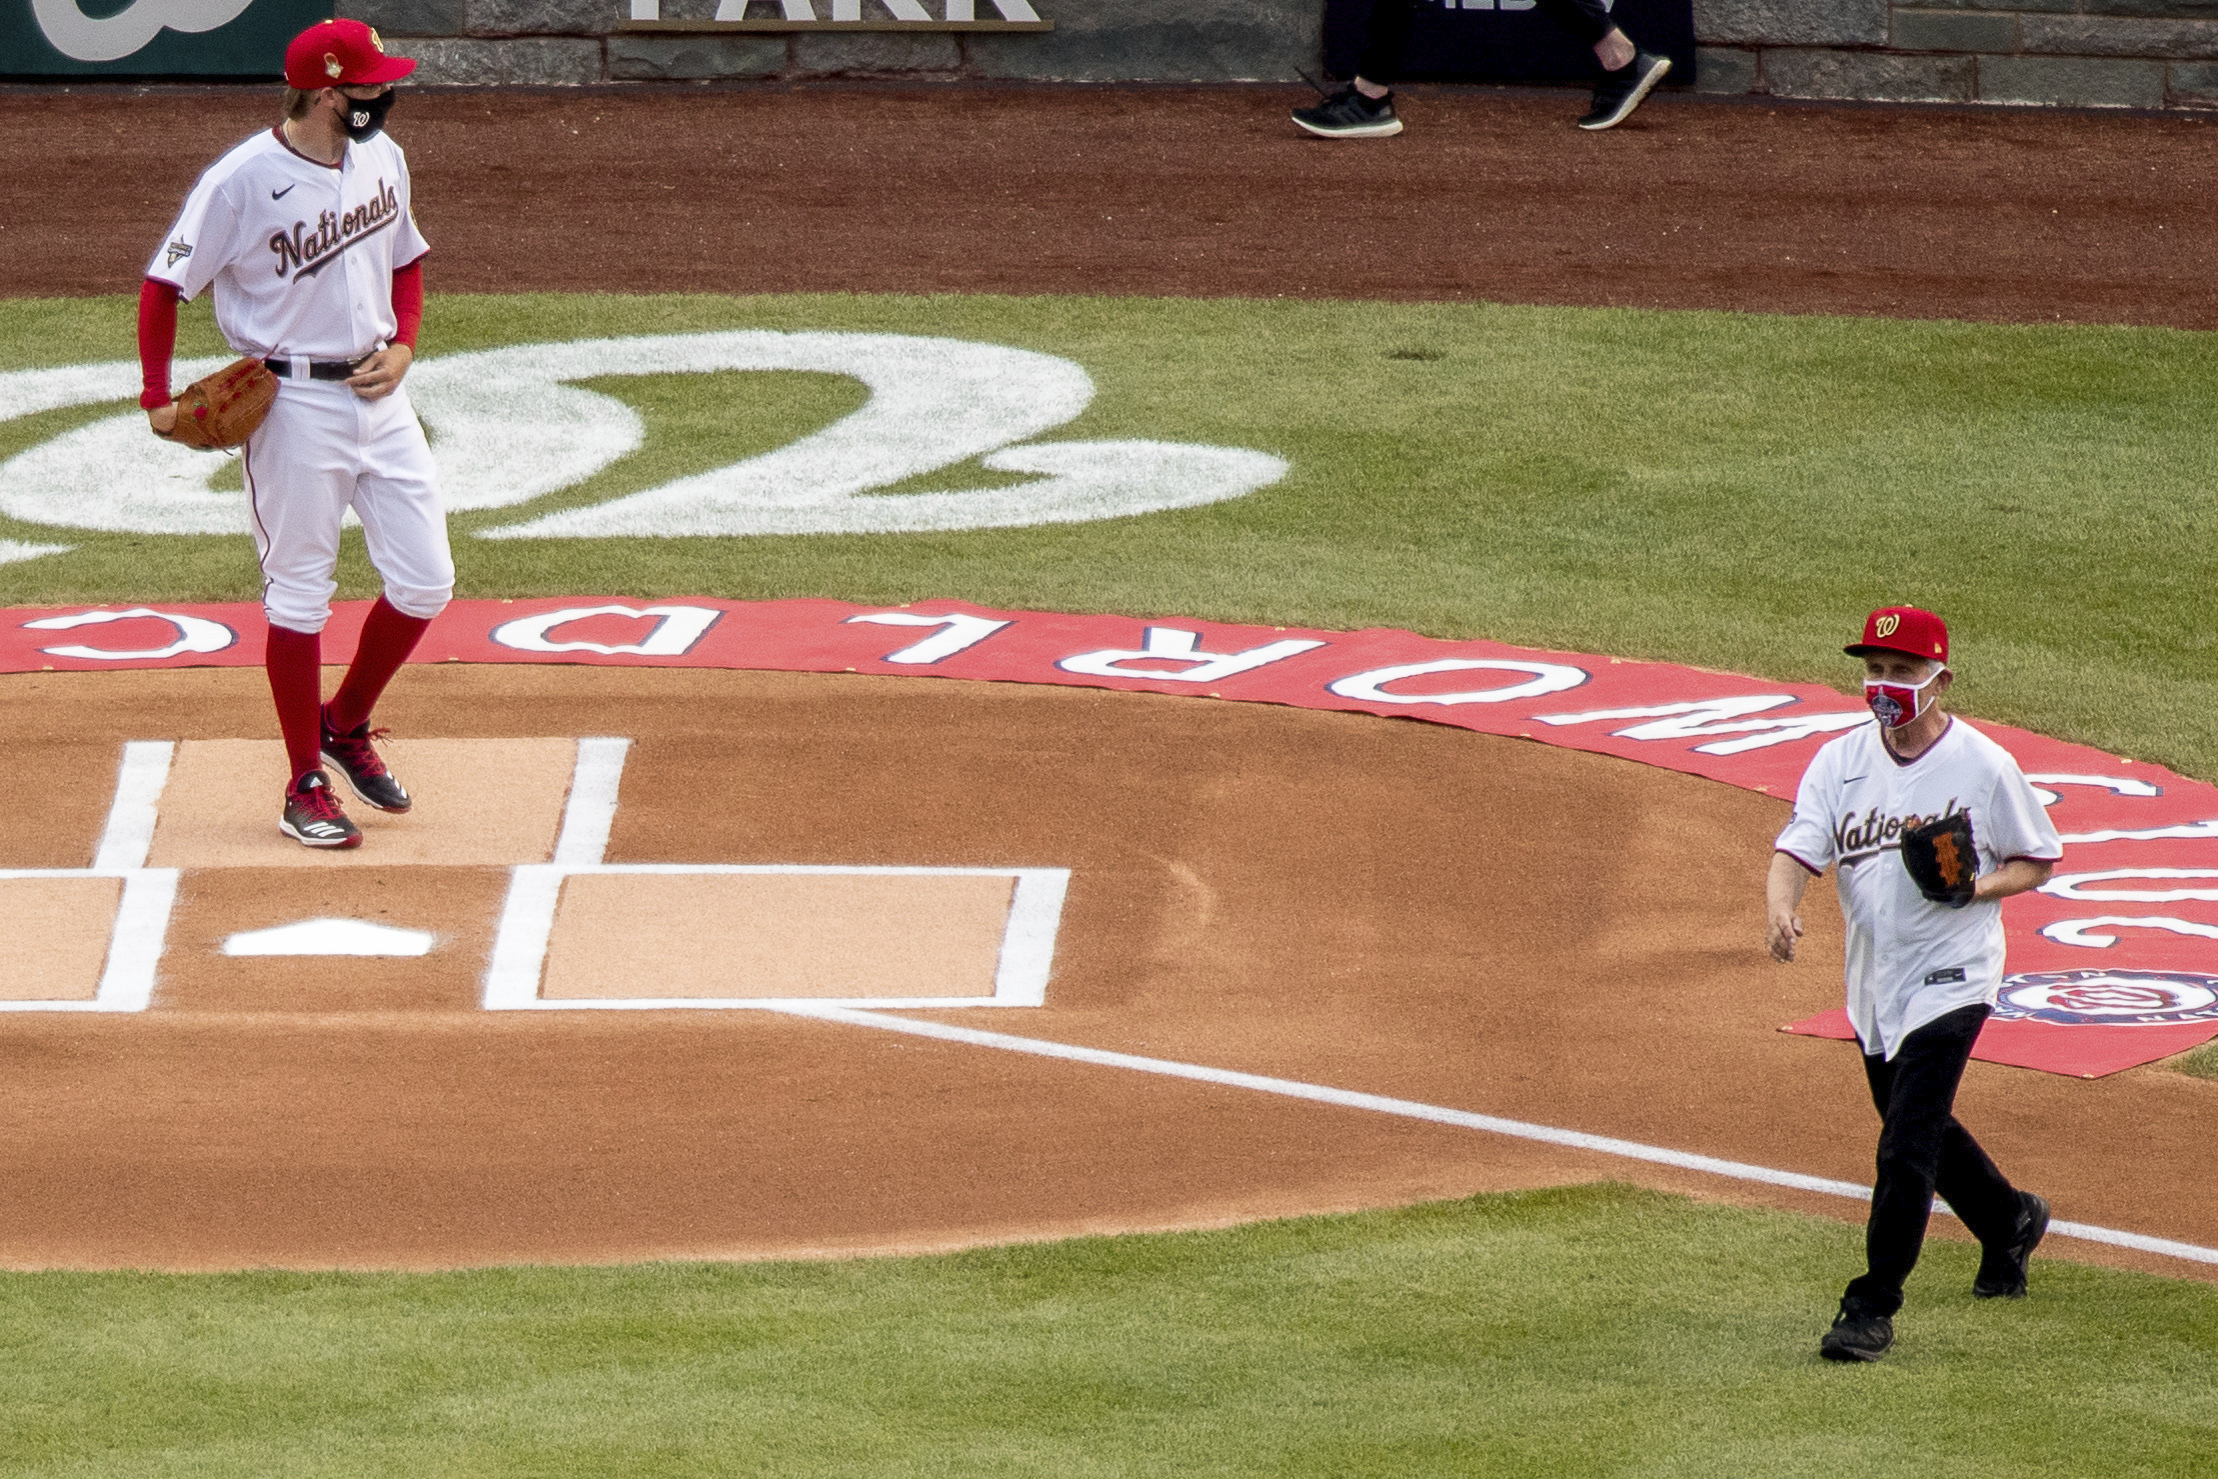 Dr. Anthony Fauci walks to the mound in Nationals gear while Sean Doolittle awaits at the plate.